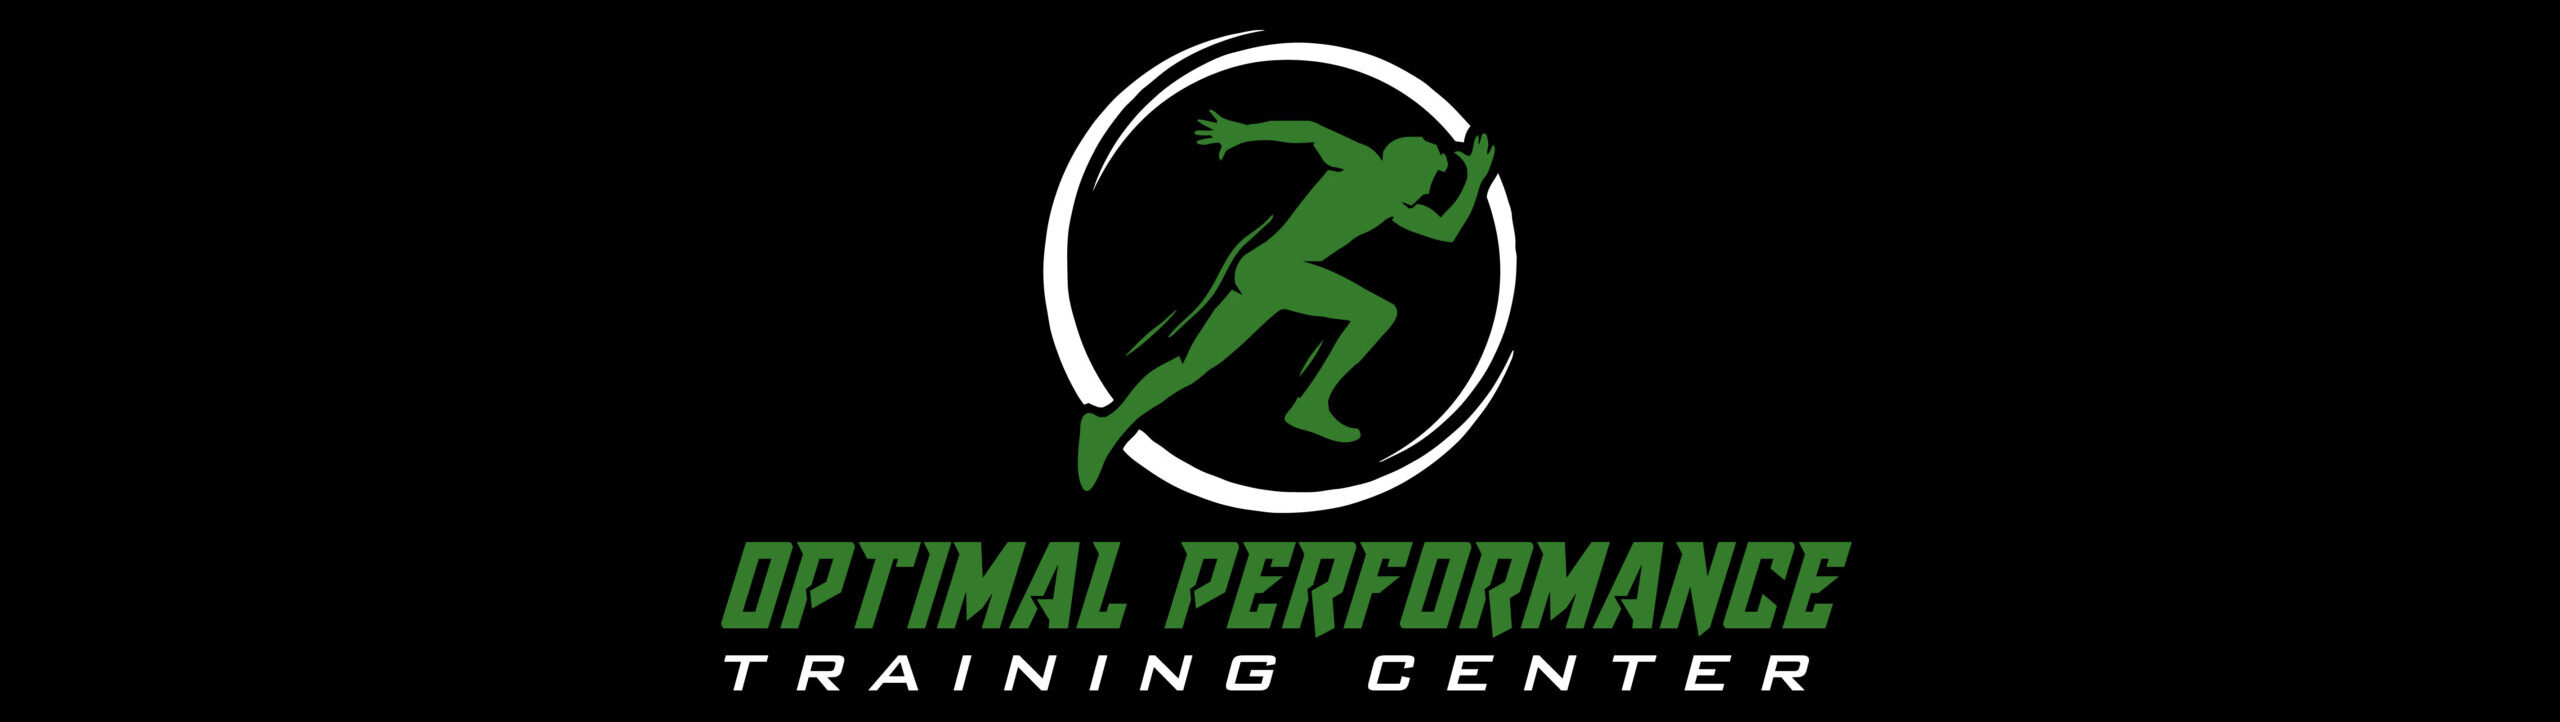 Optimal Performance Training Center